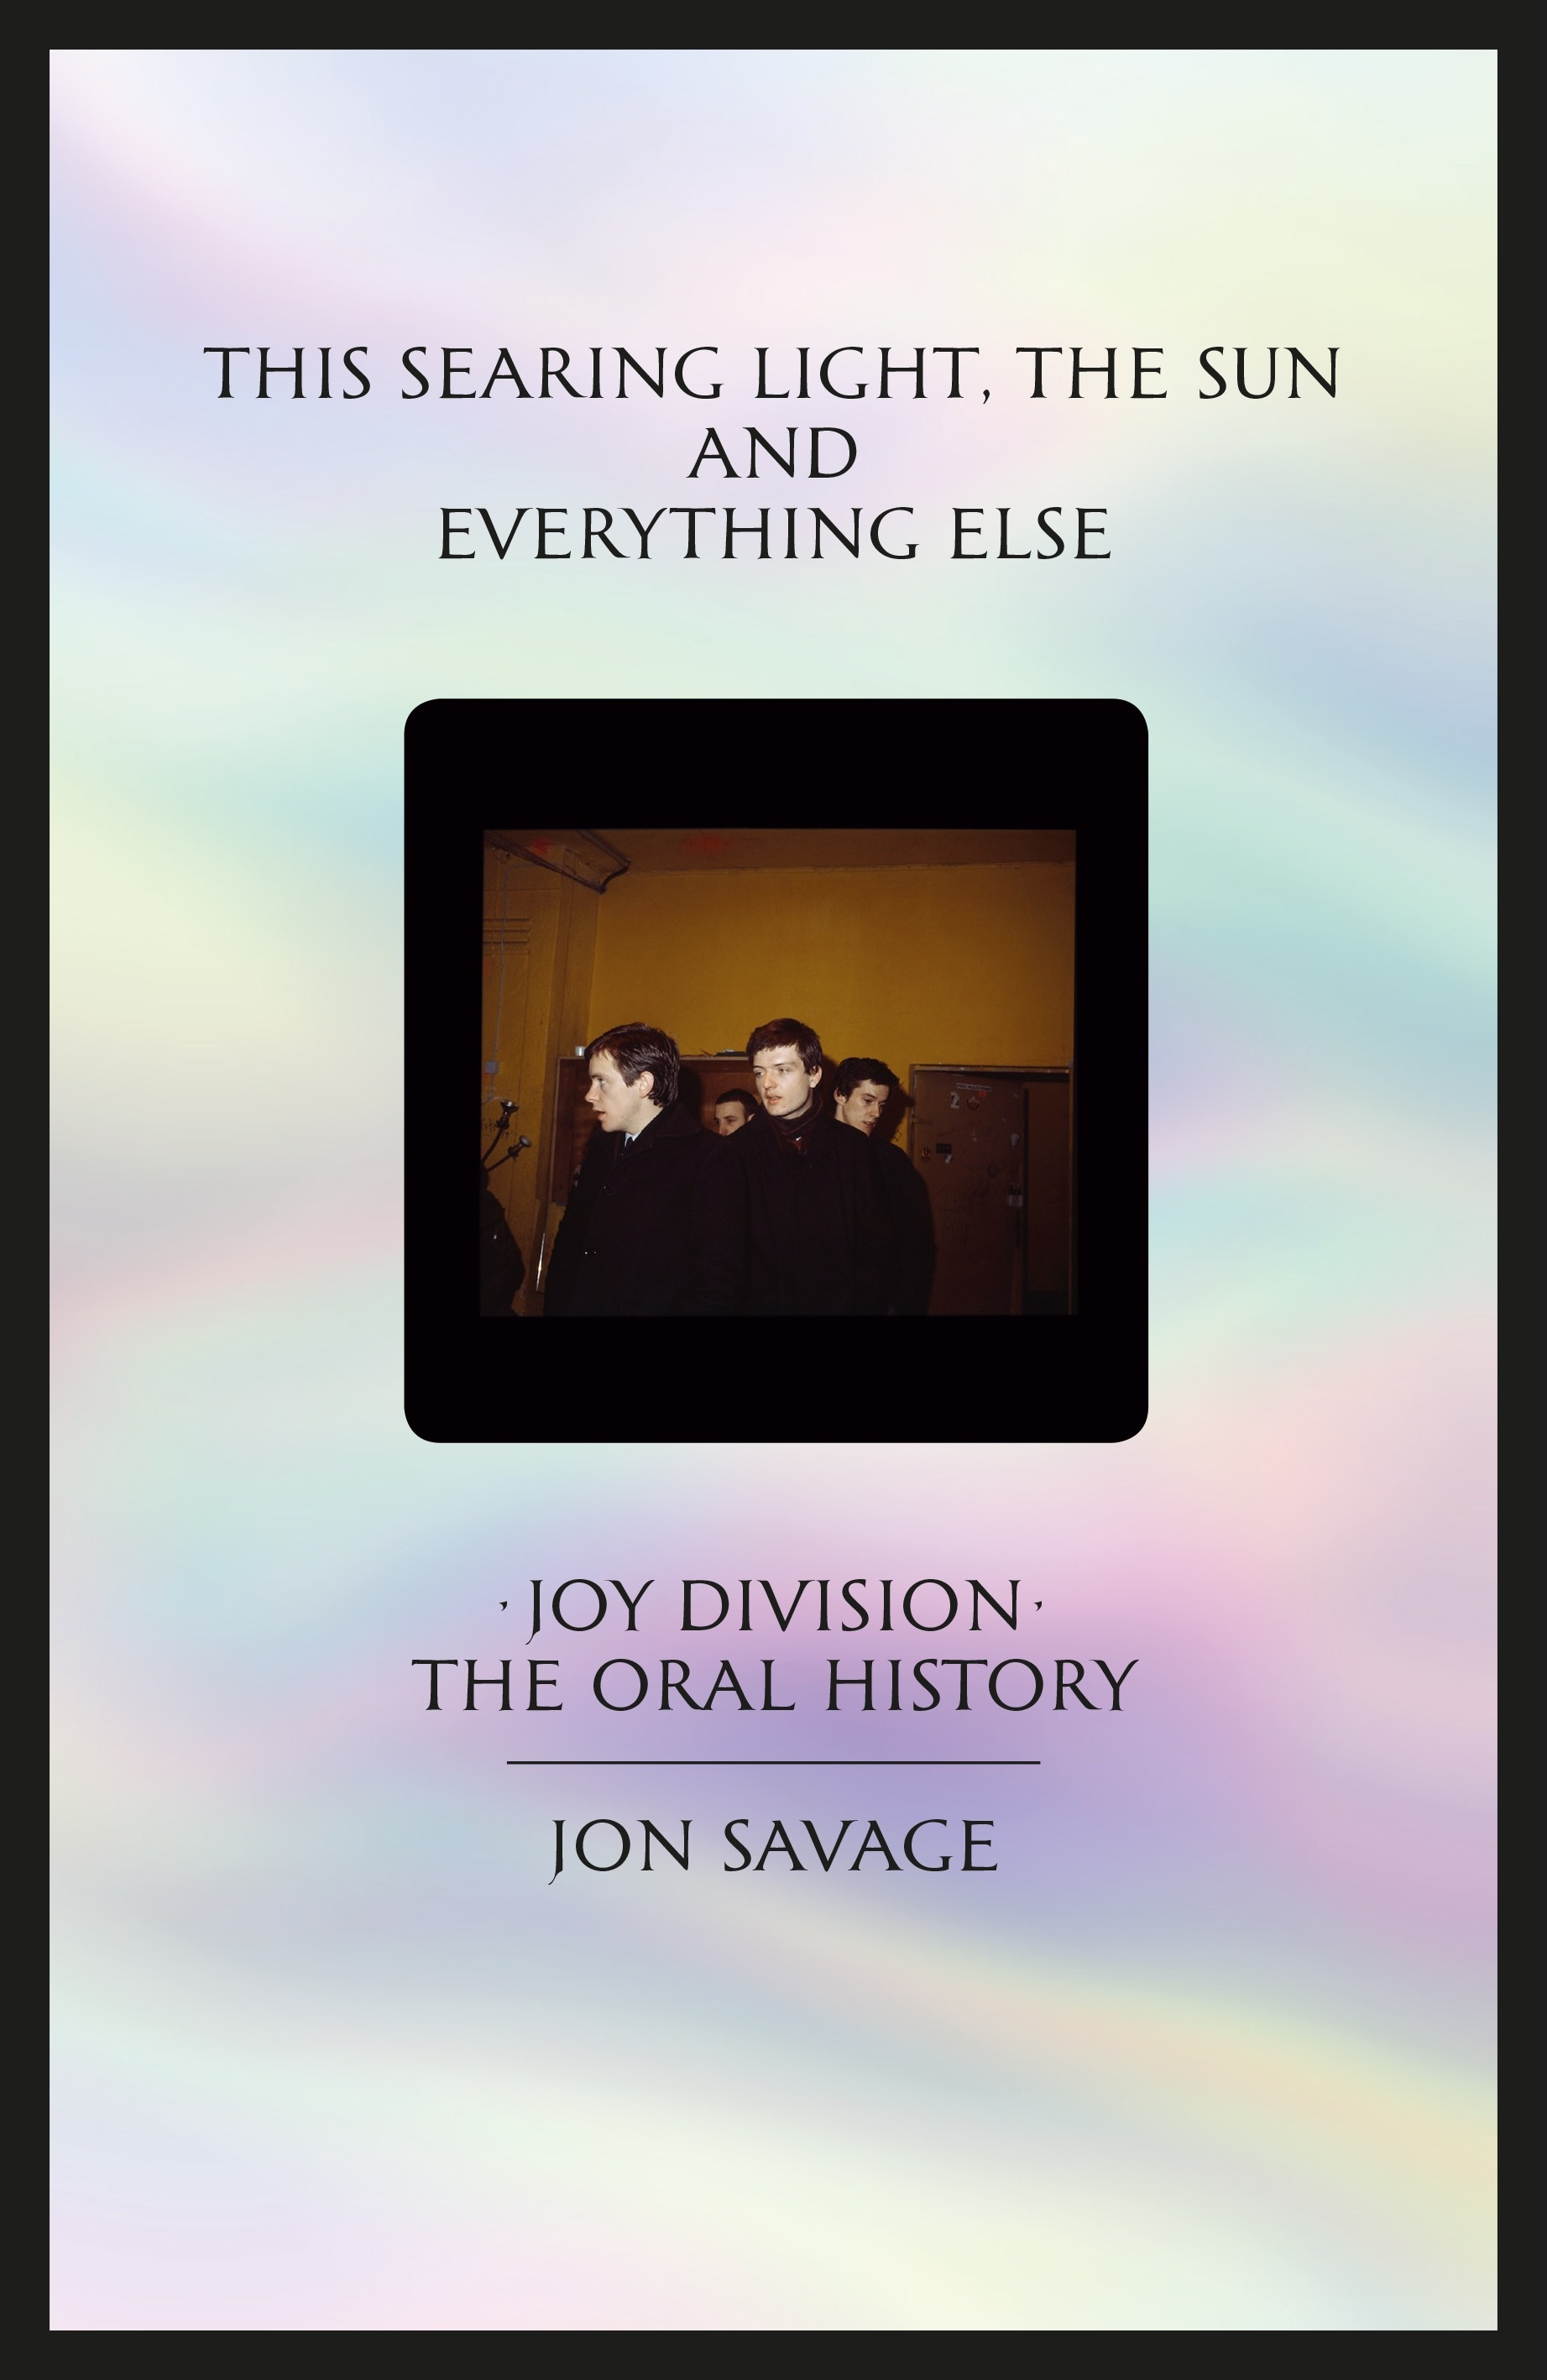 Joy Division, An Oral History by Jon Savage - design - Music, Joy Division, jon savage, ian curtis, Culture, Book